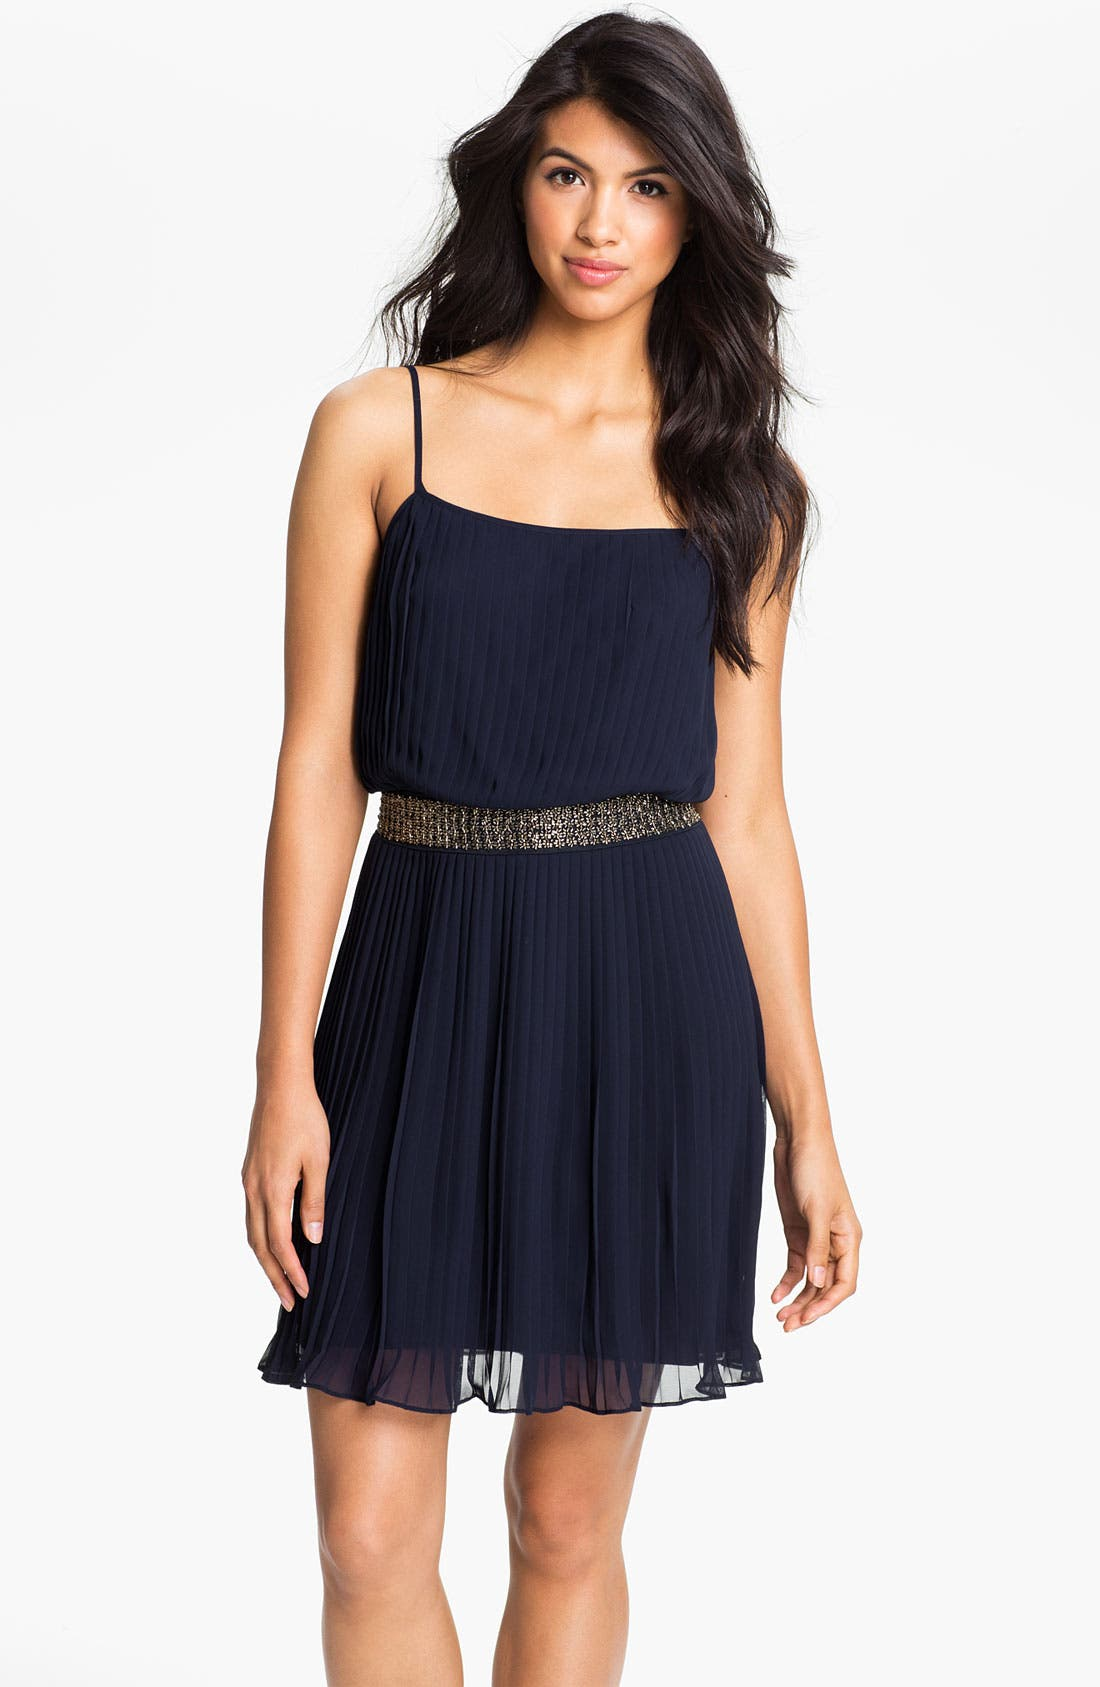 Alternate Image 1 Selected - Adrianna Papell Beaded Pleated Chiffon Dress (Petite)